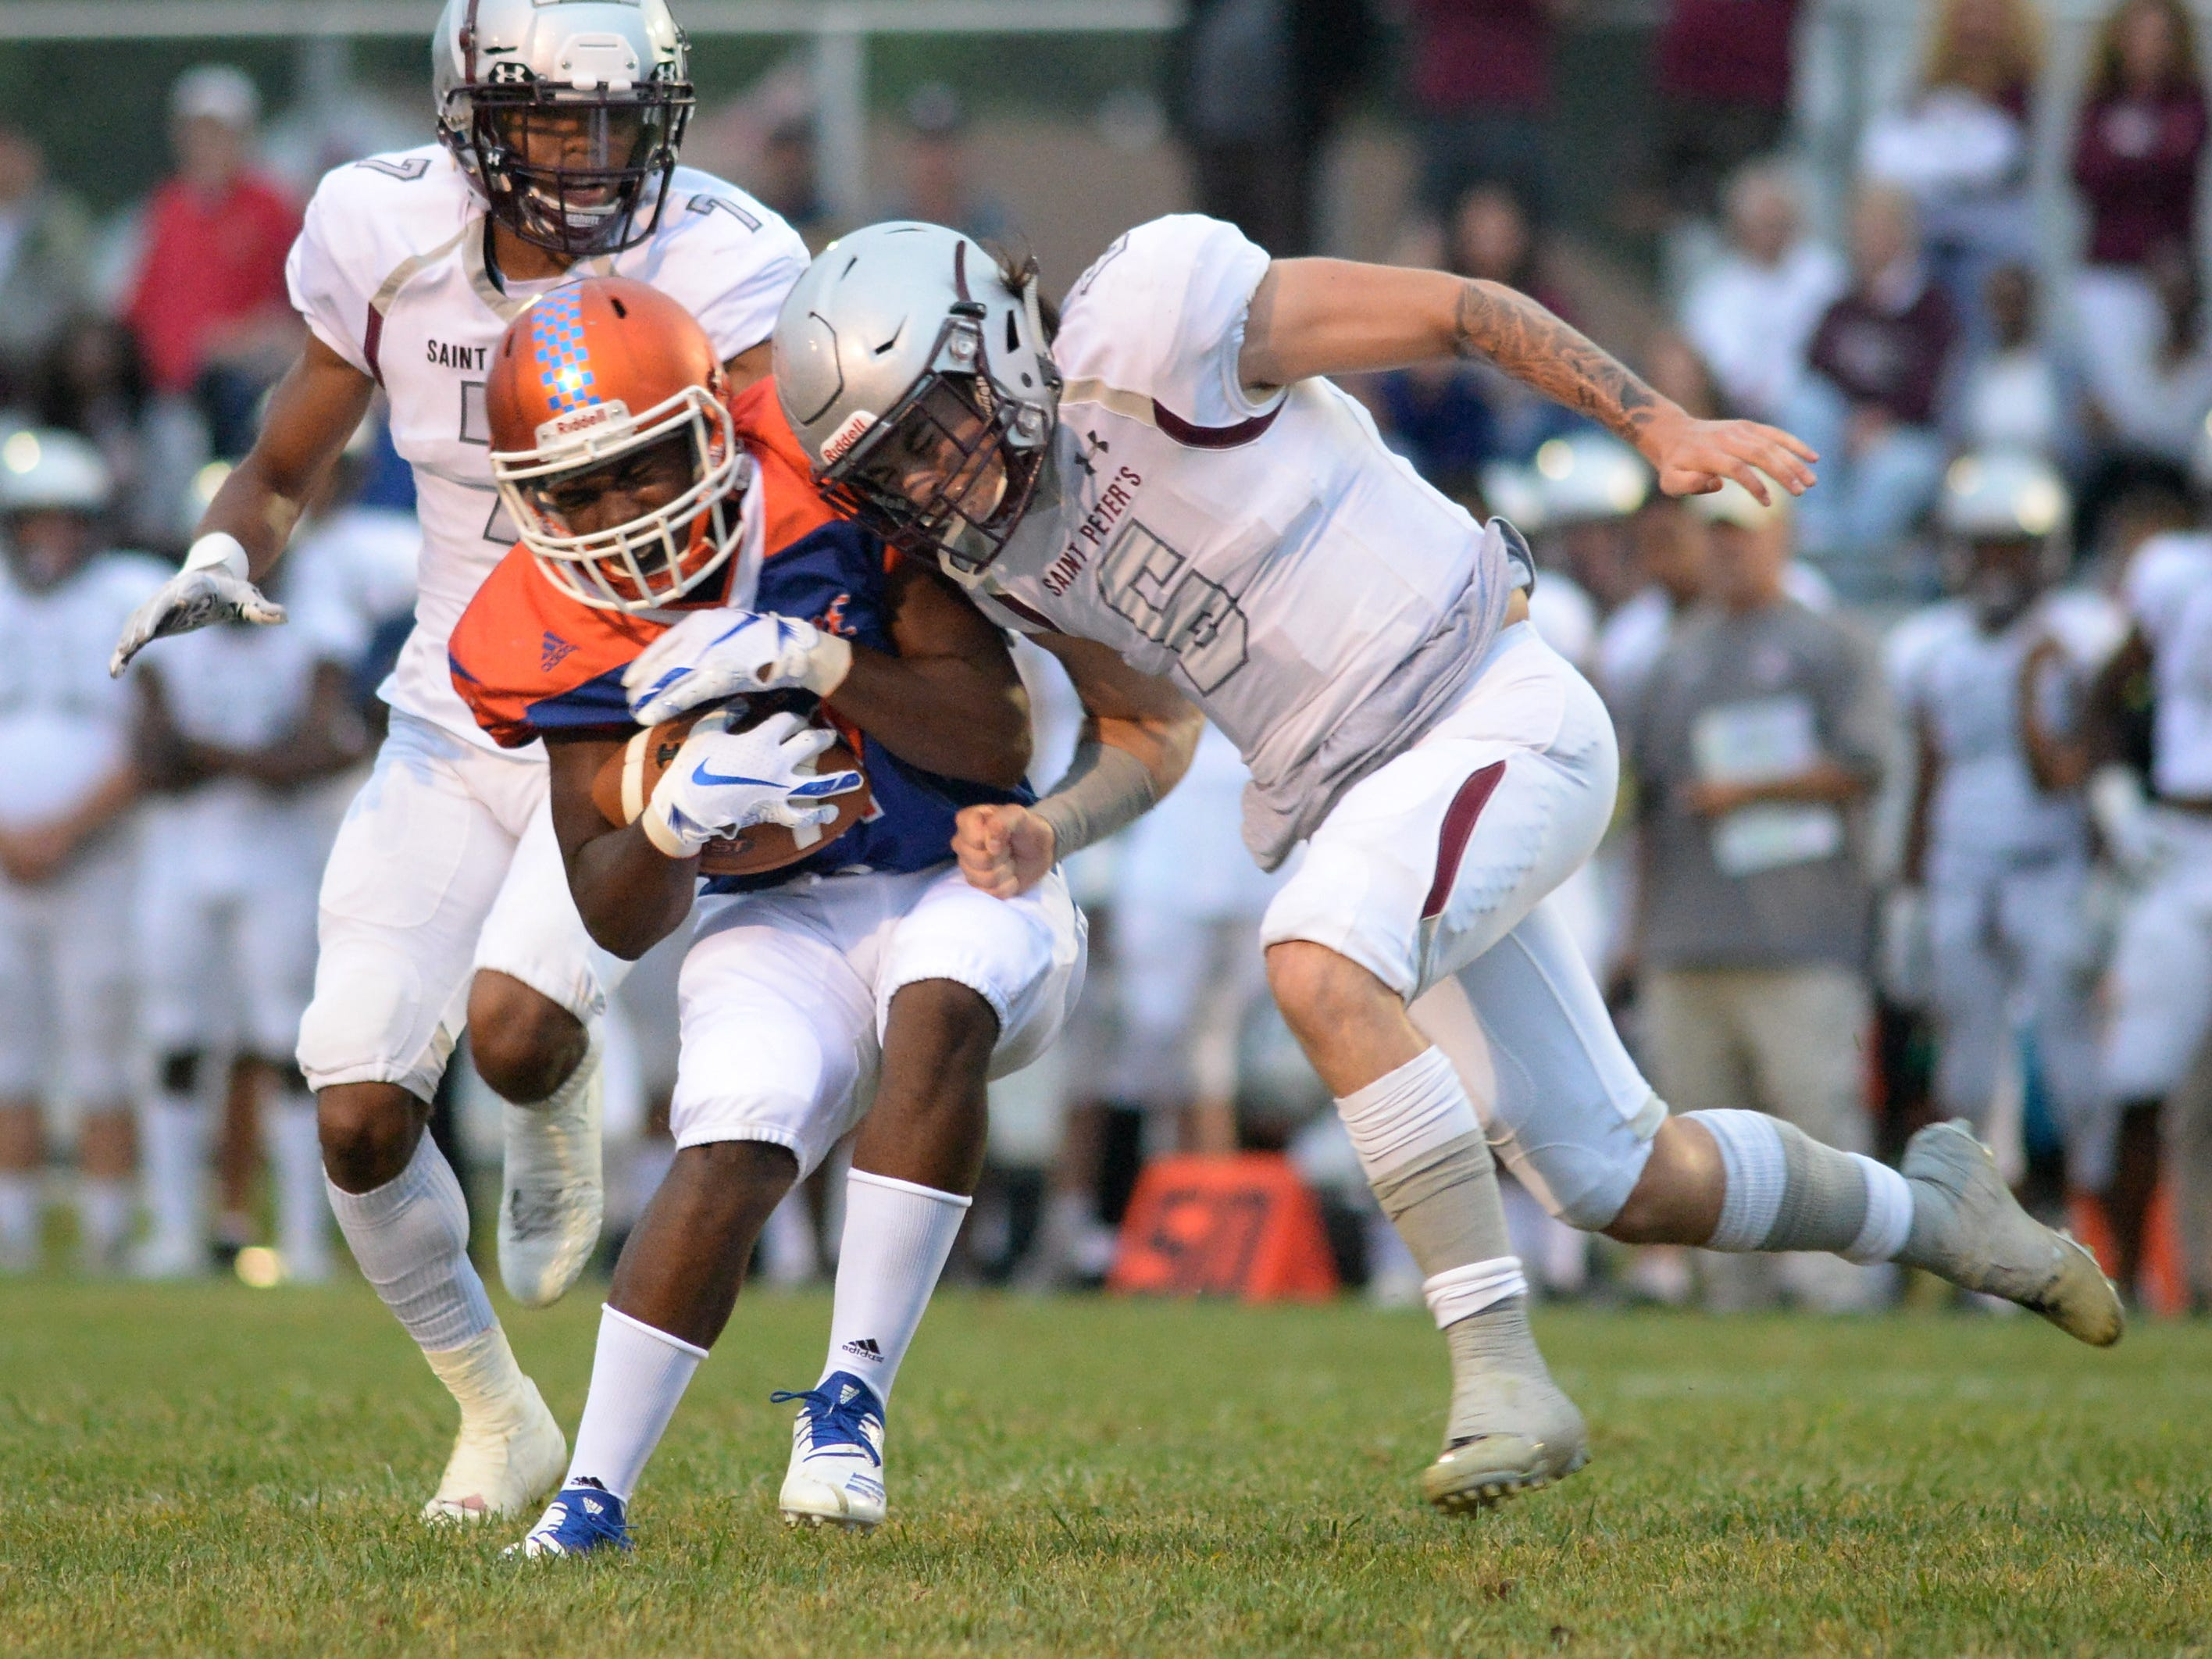 Millville's Dashon Byers is hit by St. Peter's Prep's JJ Scocco as he carries the ball during the season opening football game at Millville Memorial High School, Friday, Aug. 31, 2018.